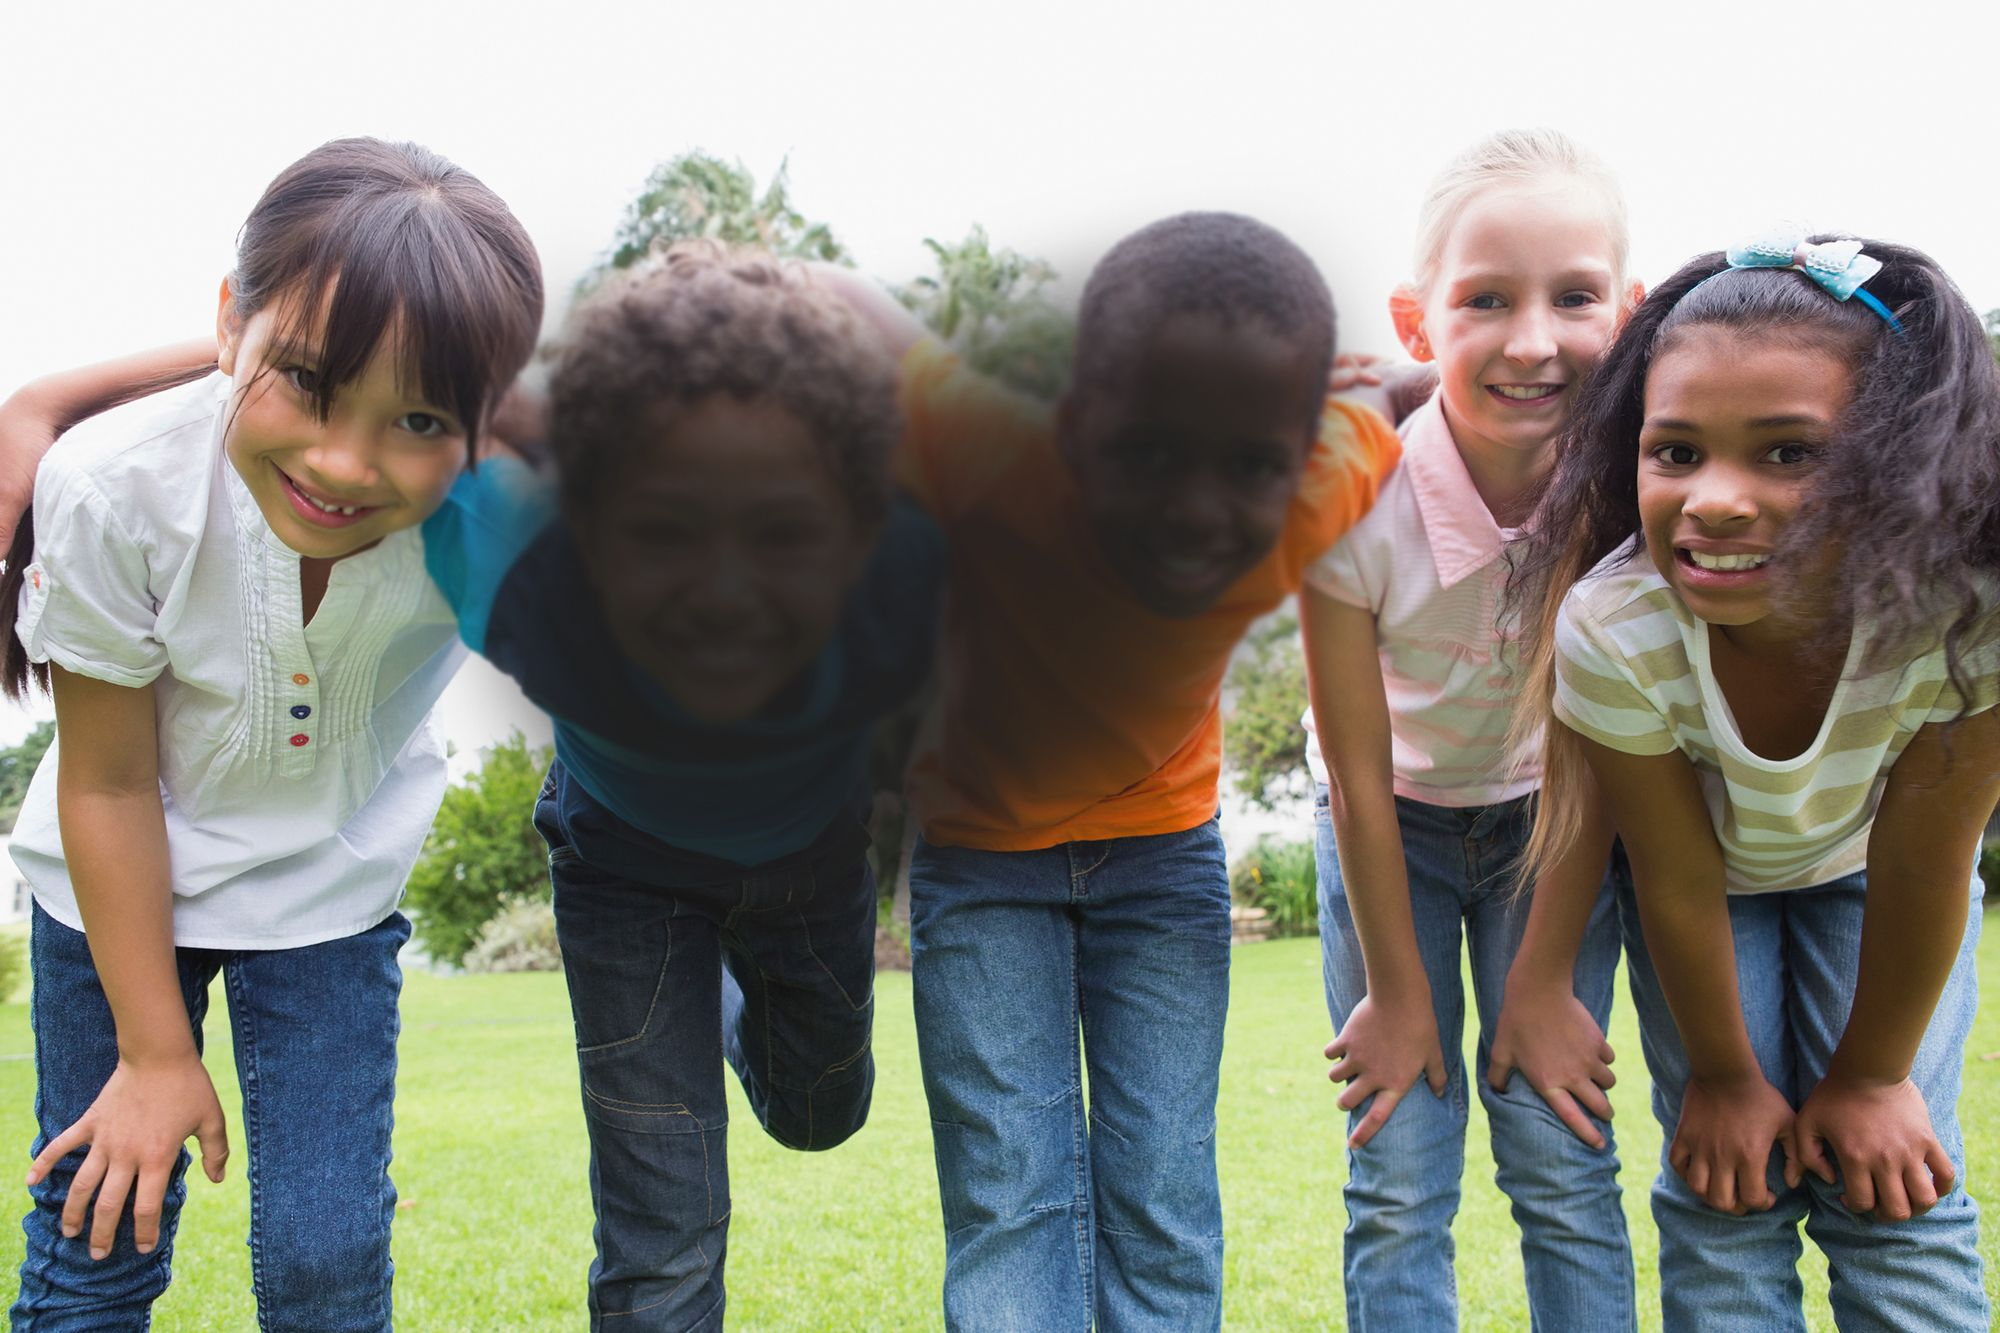 A blurred photo of a group of children.